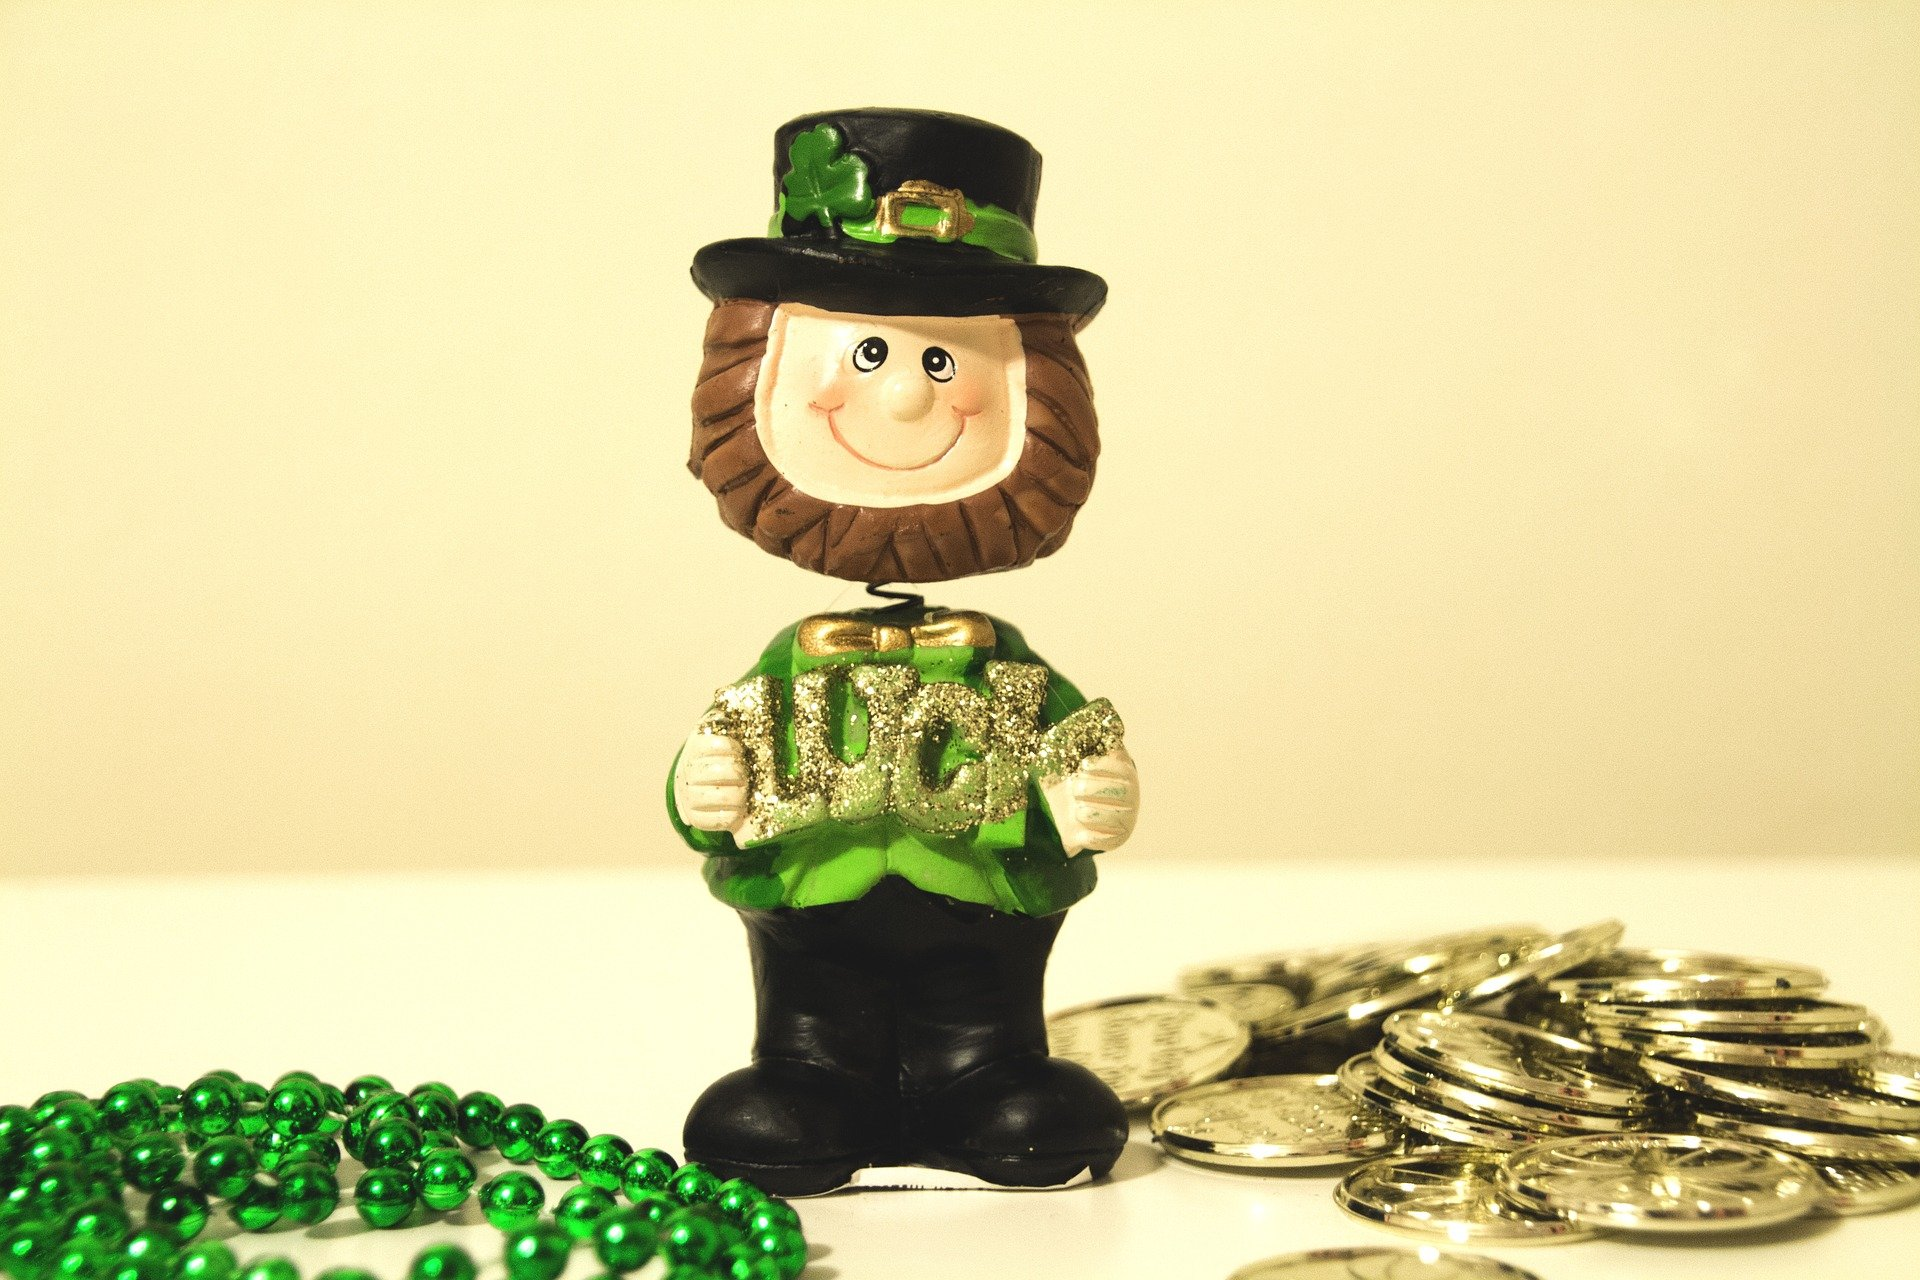 plastic toy leprechaun on a table next to a green bead necklace and gold coins